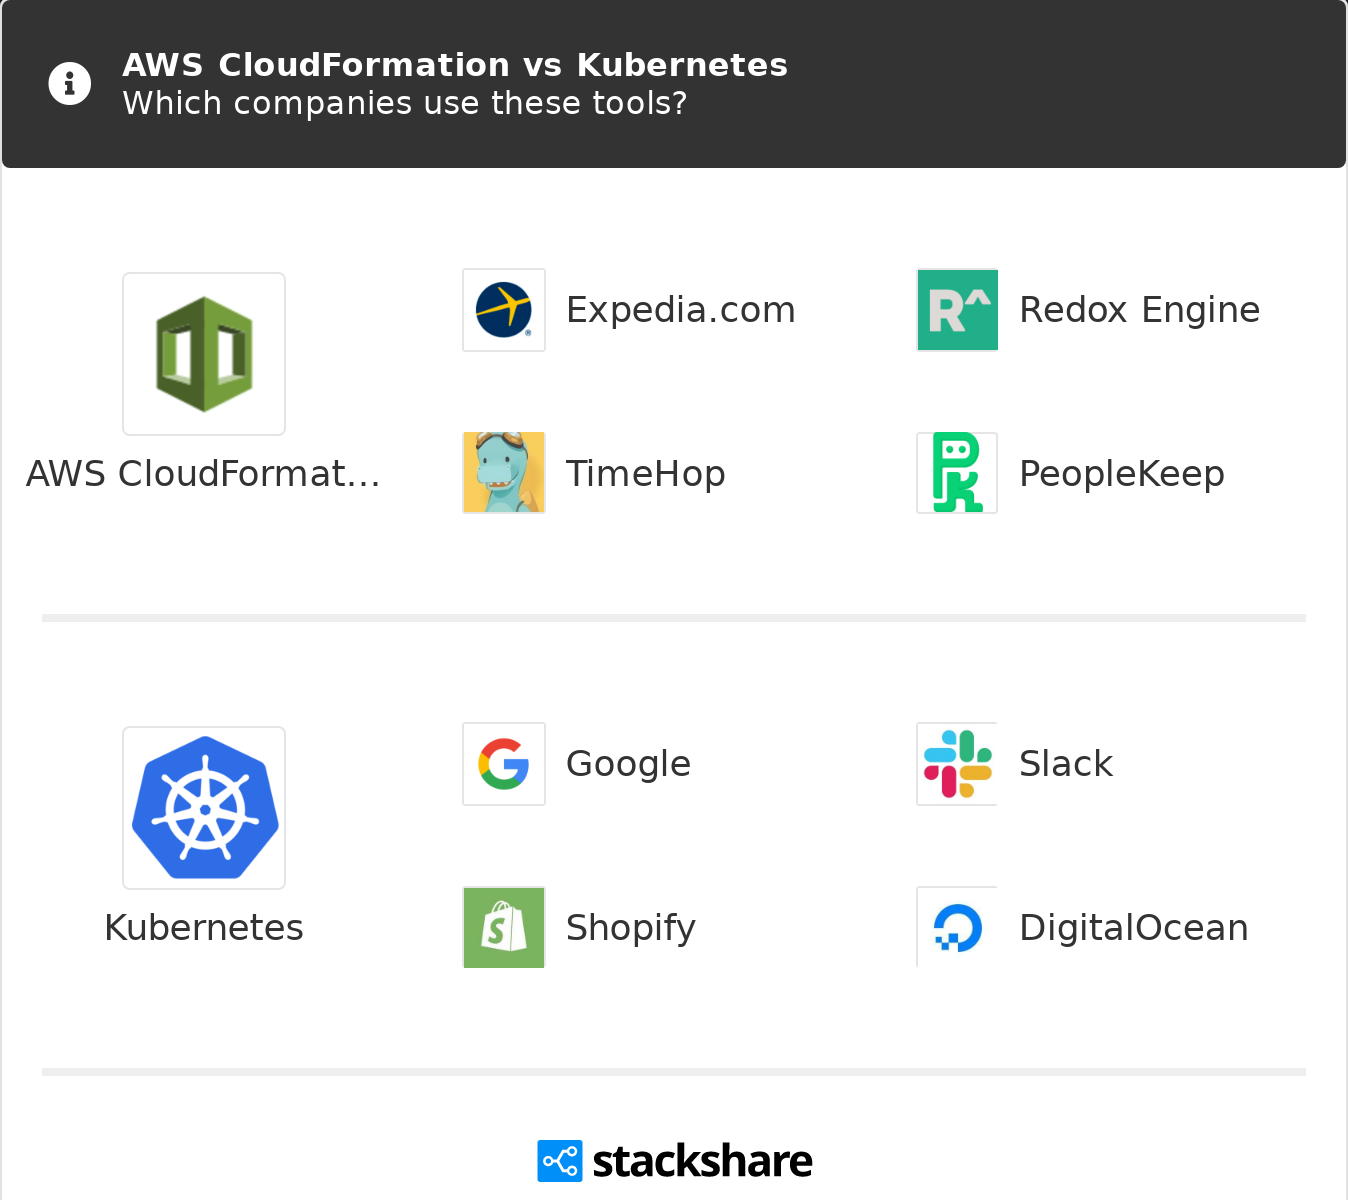 AWS CloudFormation vs Kubernetes | What are the differences?